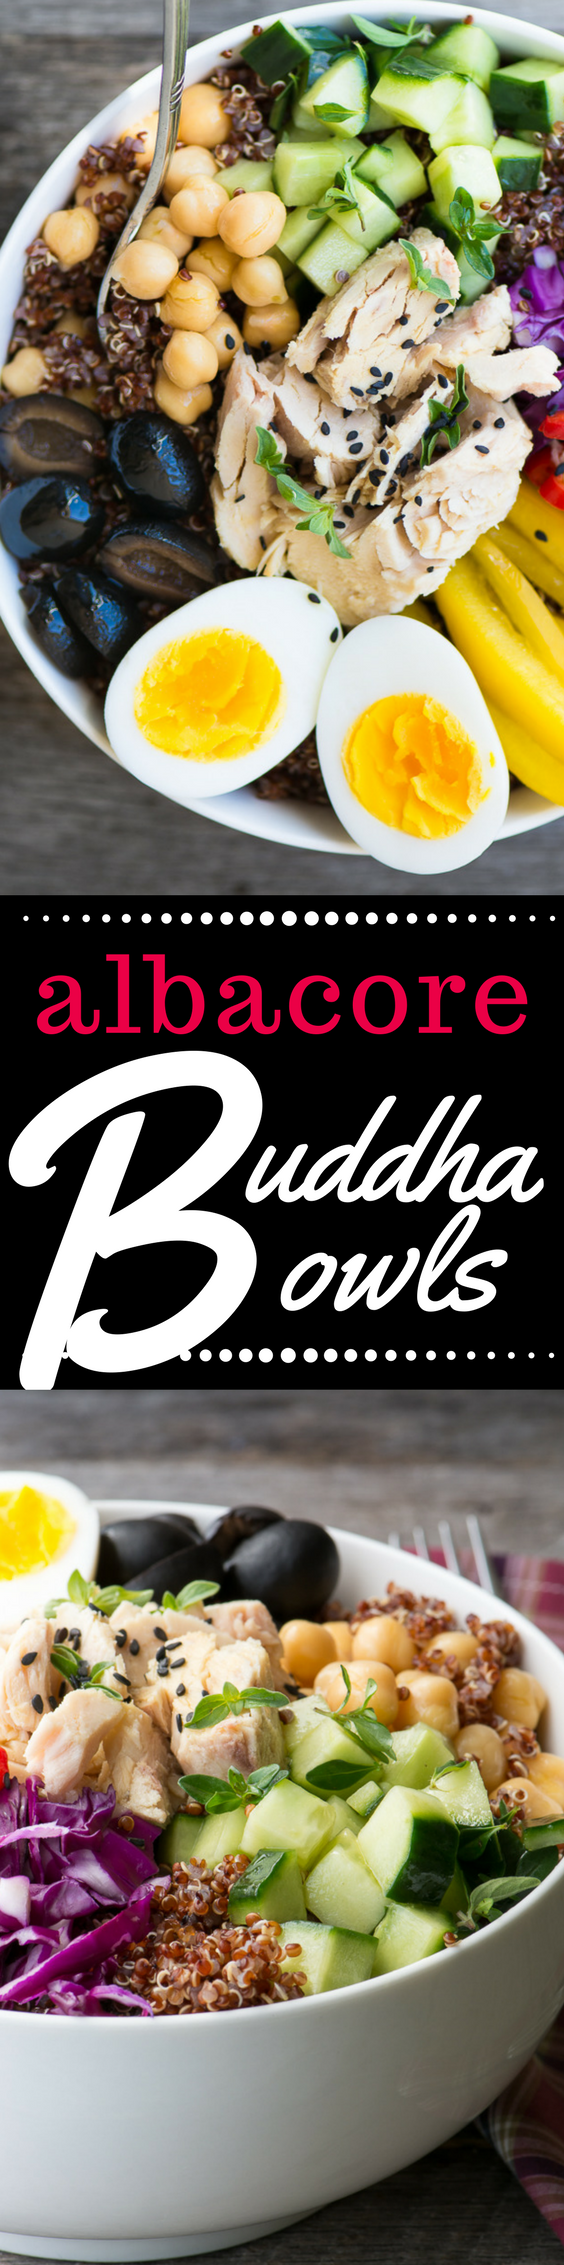 Albacore Buddha Bowls are quick, easy, high protein meals that can be made from pantry staples in under 30 minutes. ~ theviewfromgreatisland.com